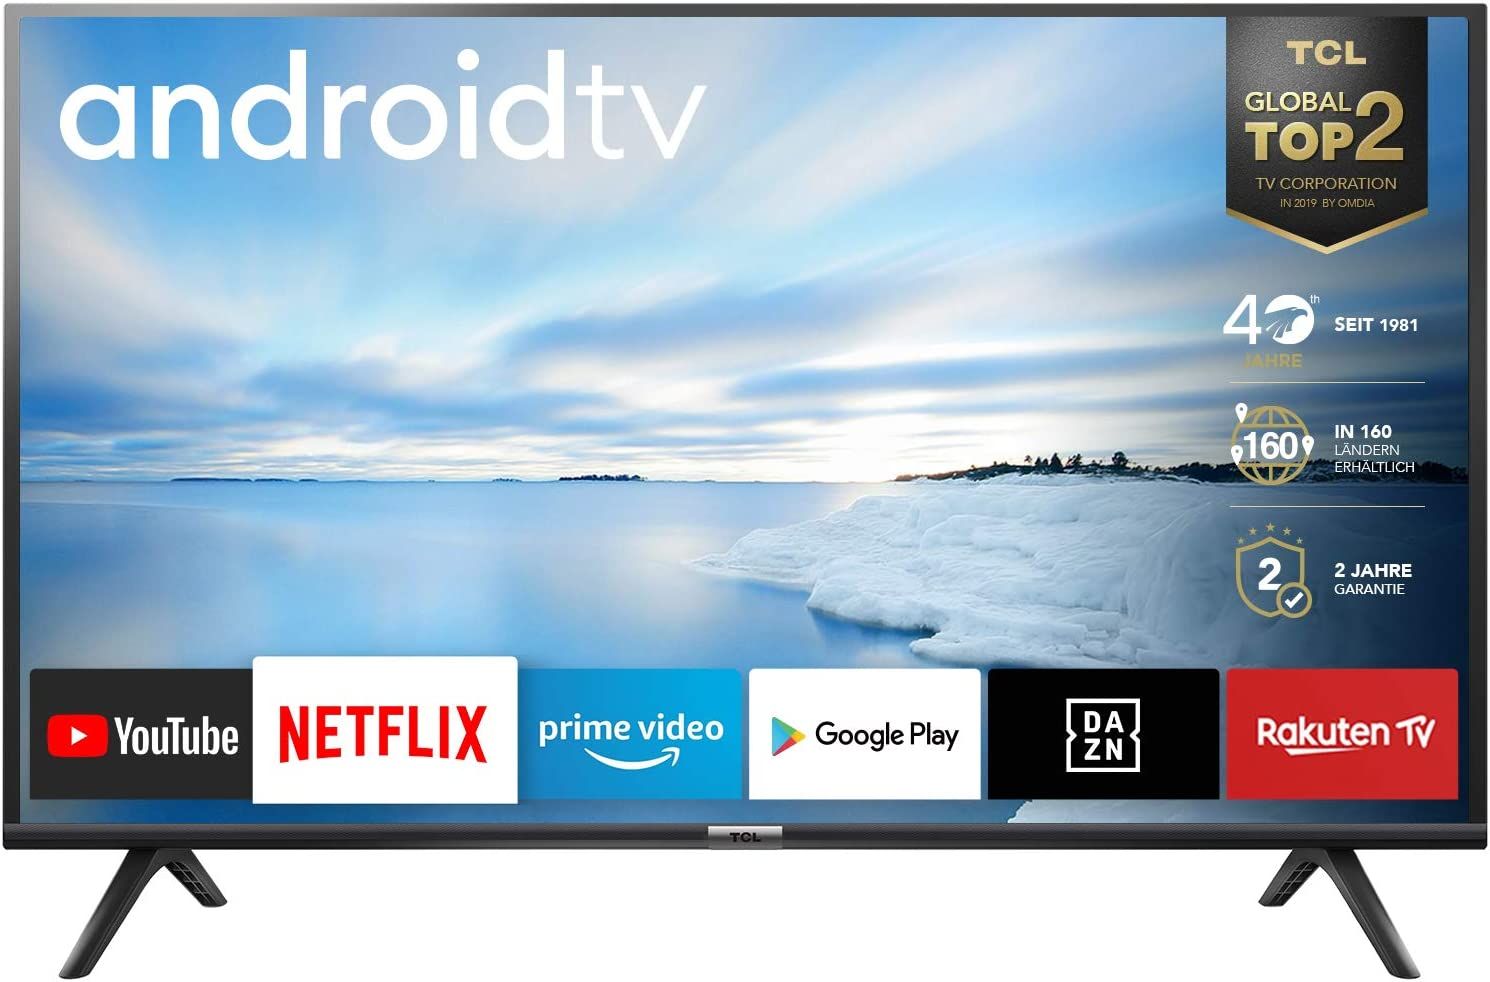 Tcl 32es561 Led Fernseher 80 Cm 32 Zoll Smart Tv Hd Triple Tuner Android Tv Prime Video Hdr Micro Dimming Dolby Audio Google Assistant Schwarz Heimkino Tv Video